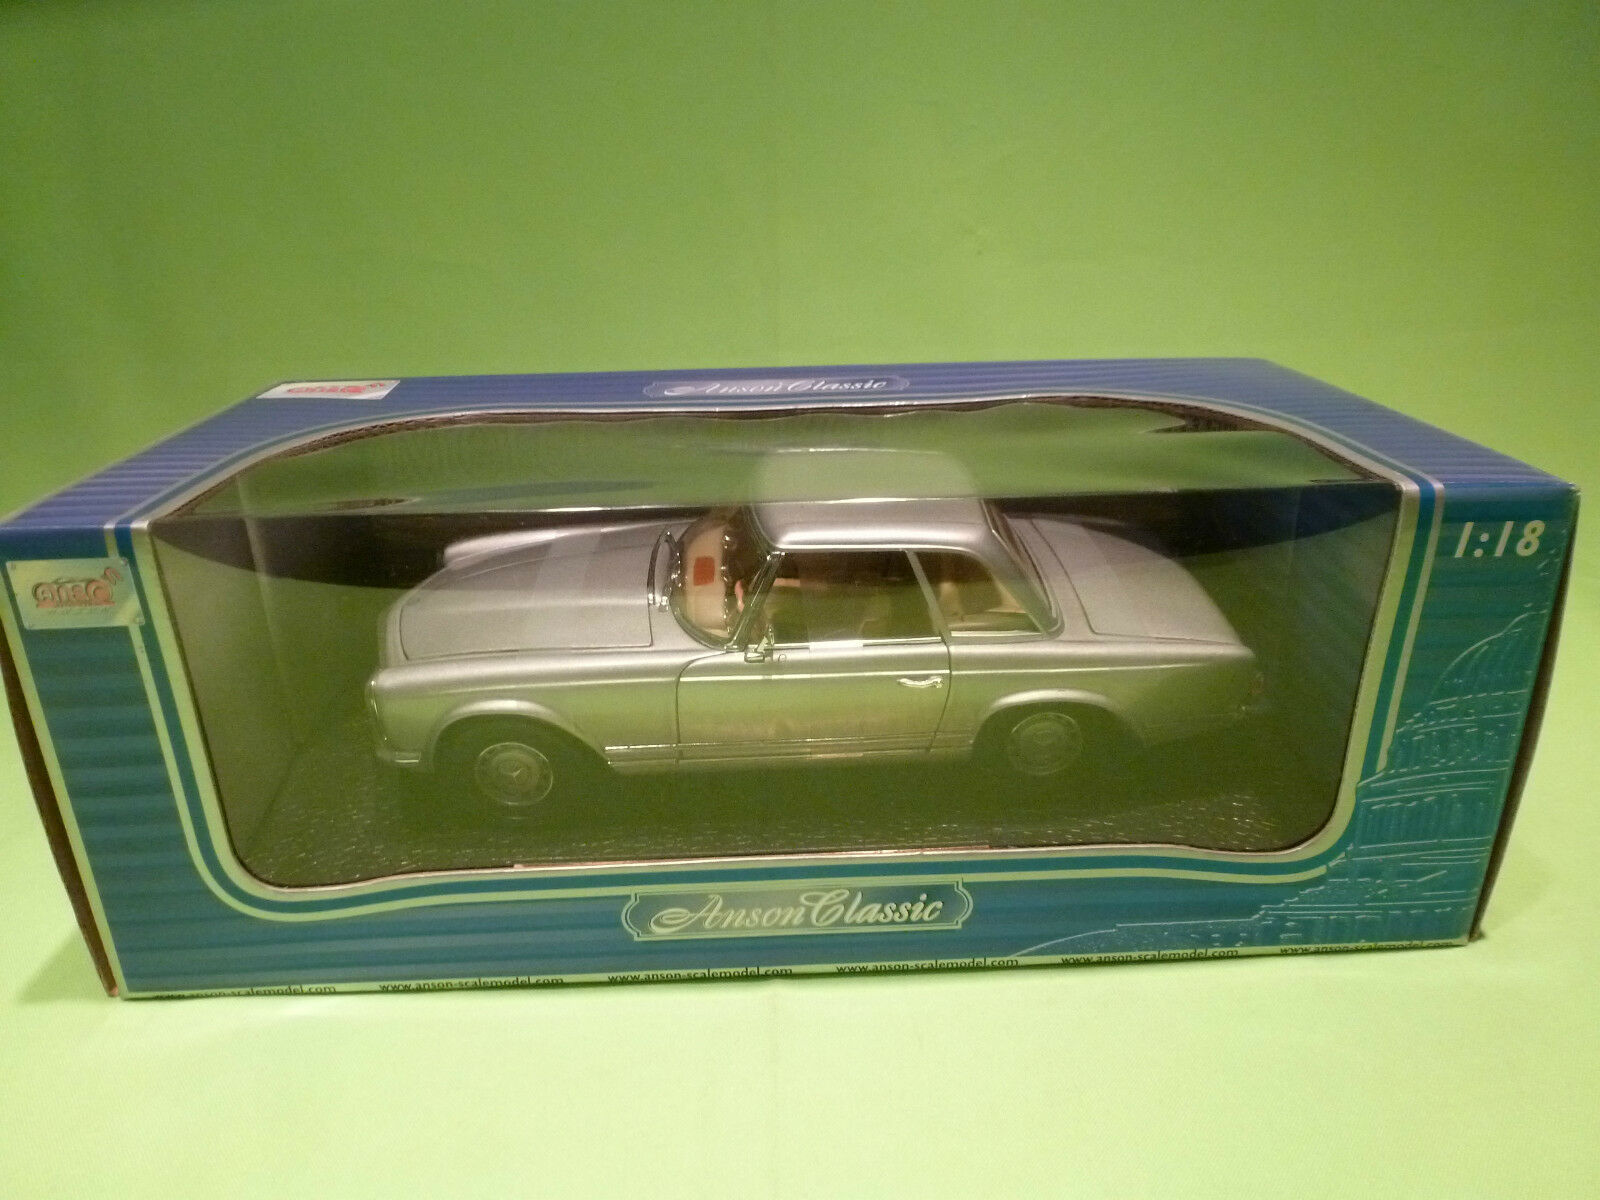 ANSON 1 18 MERCEDES BENZ 280 SL  - RARE SELTEN - GOOD CONDITION IN BOX